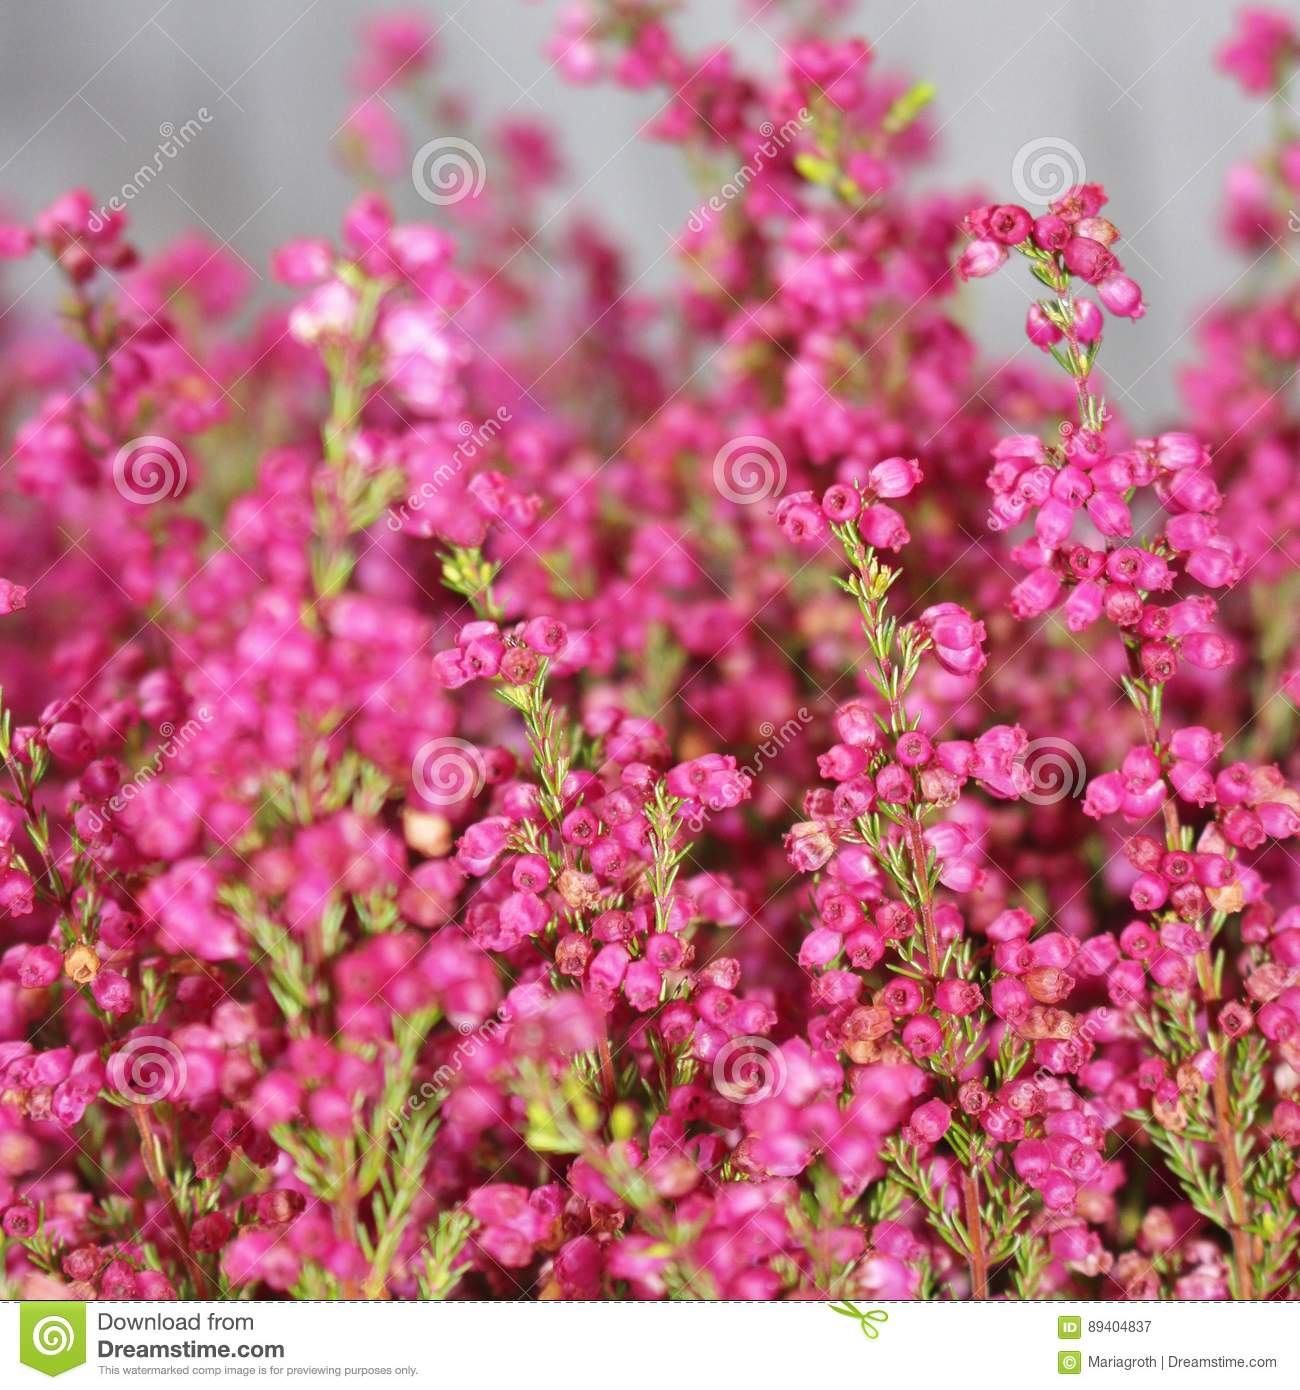 Erica Gracilis Erica Gracilis Stock Image Image Of Decorative Leaf 89404837